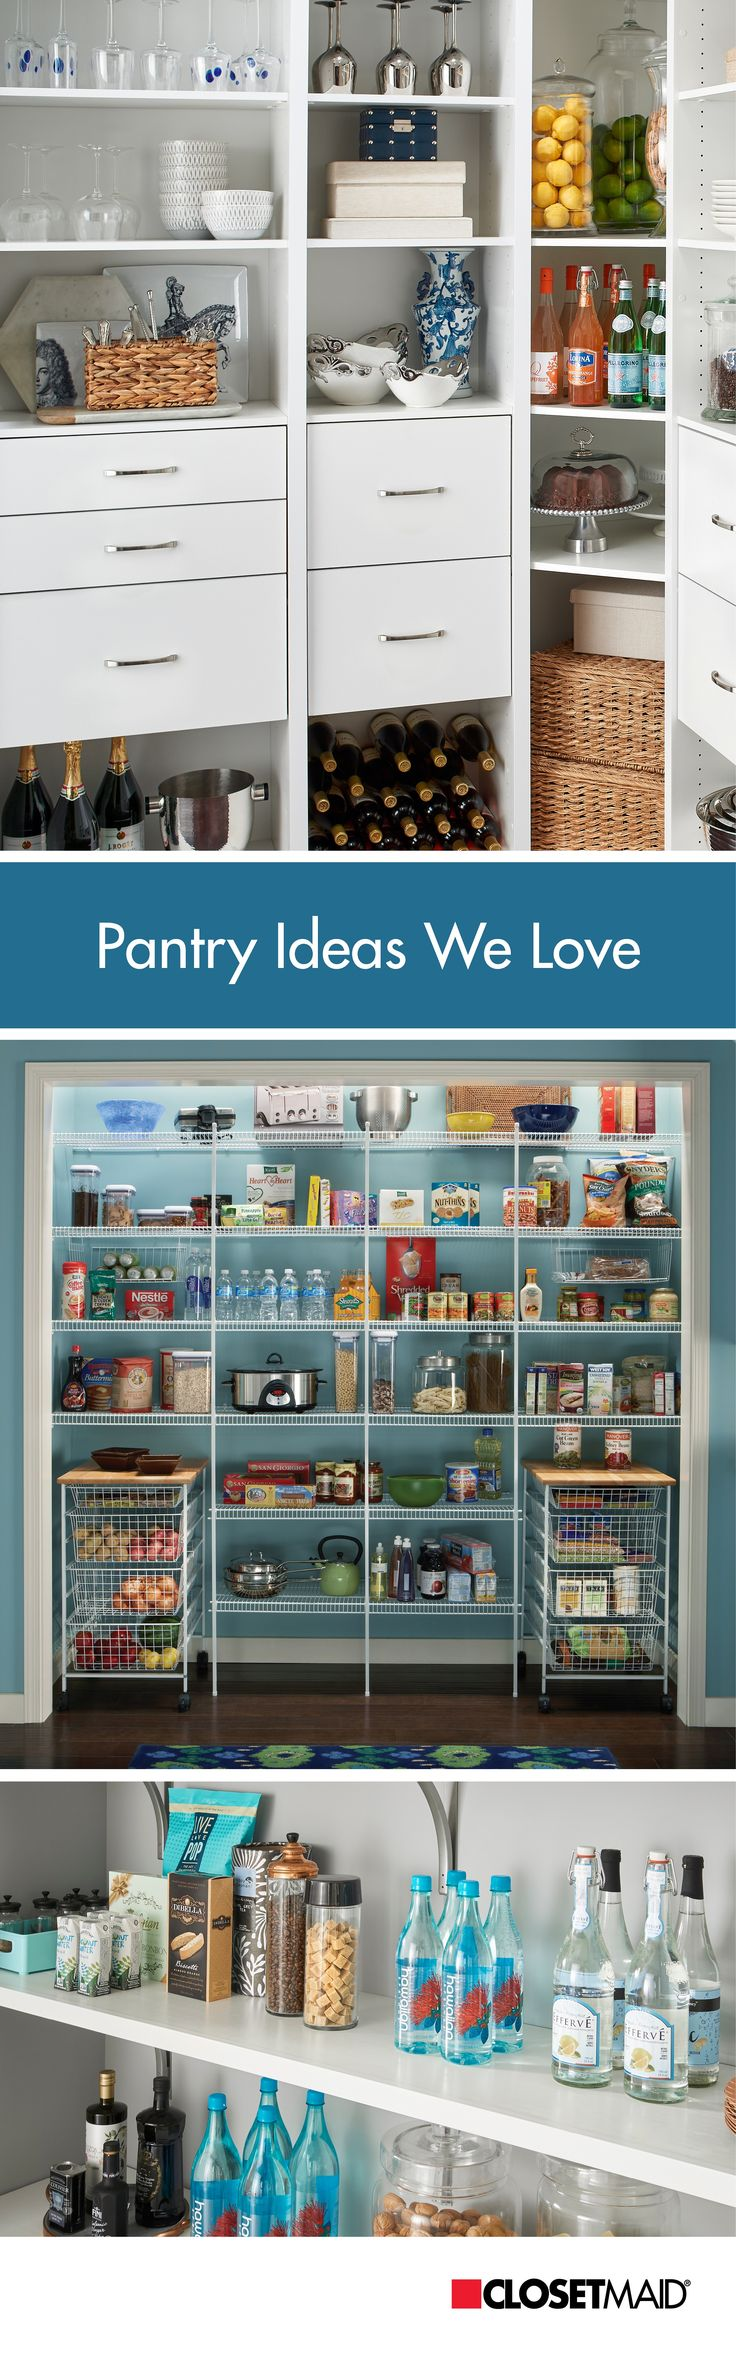 251 best Kitchen & Pantry images on Pinterest | Home ideas, Bar home ...